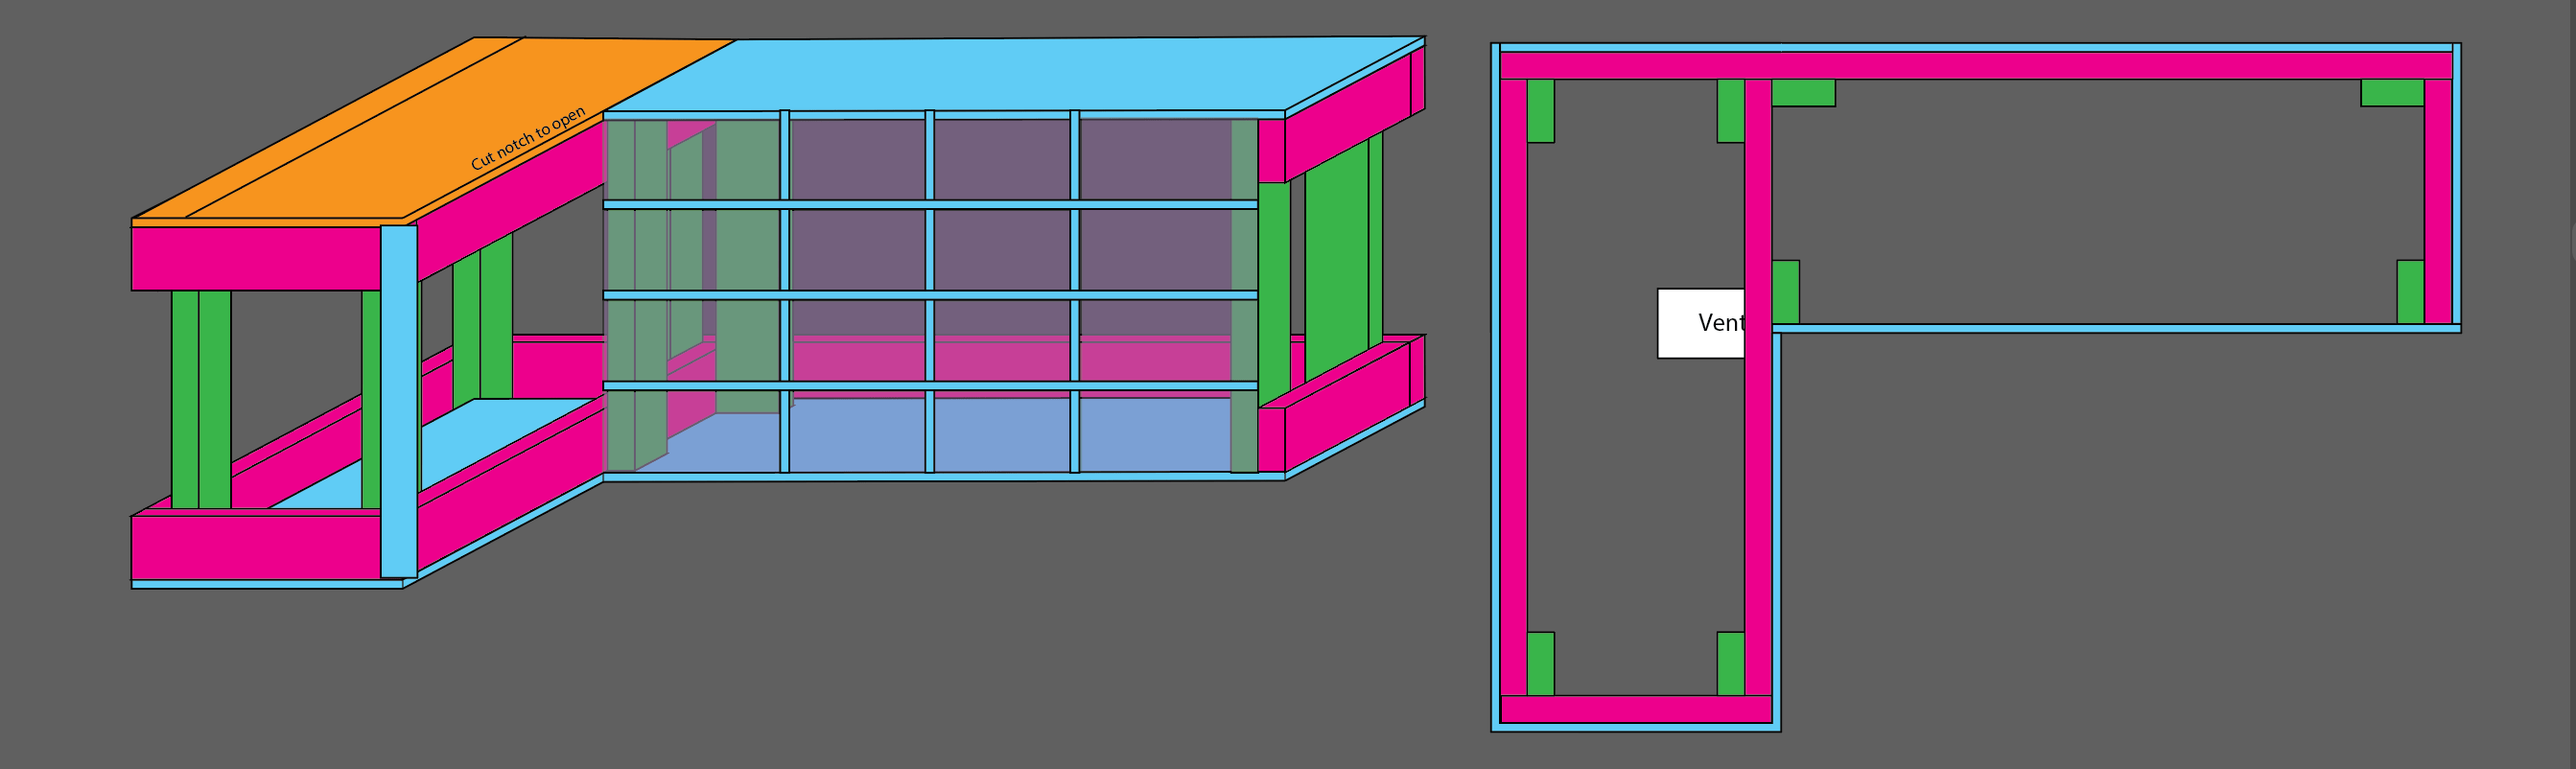 Vector image of the bench plans